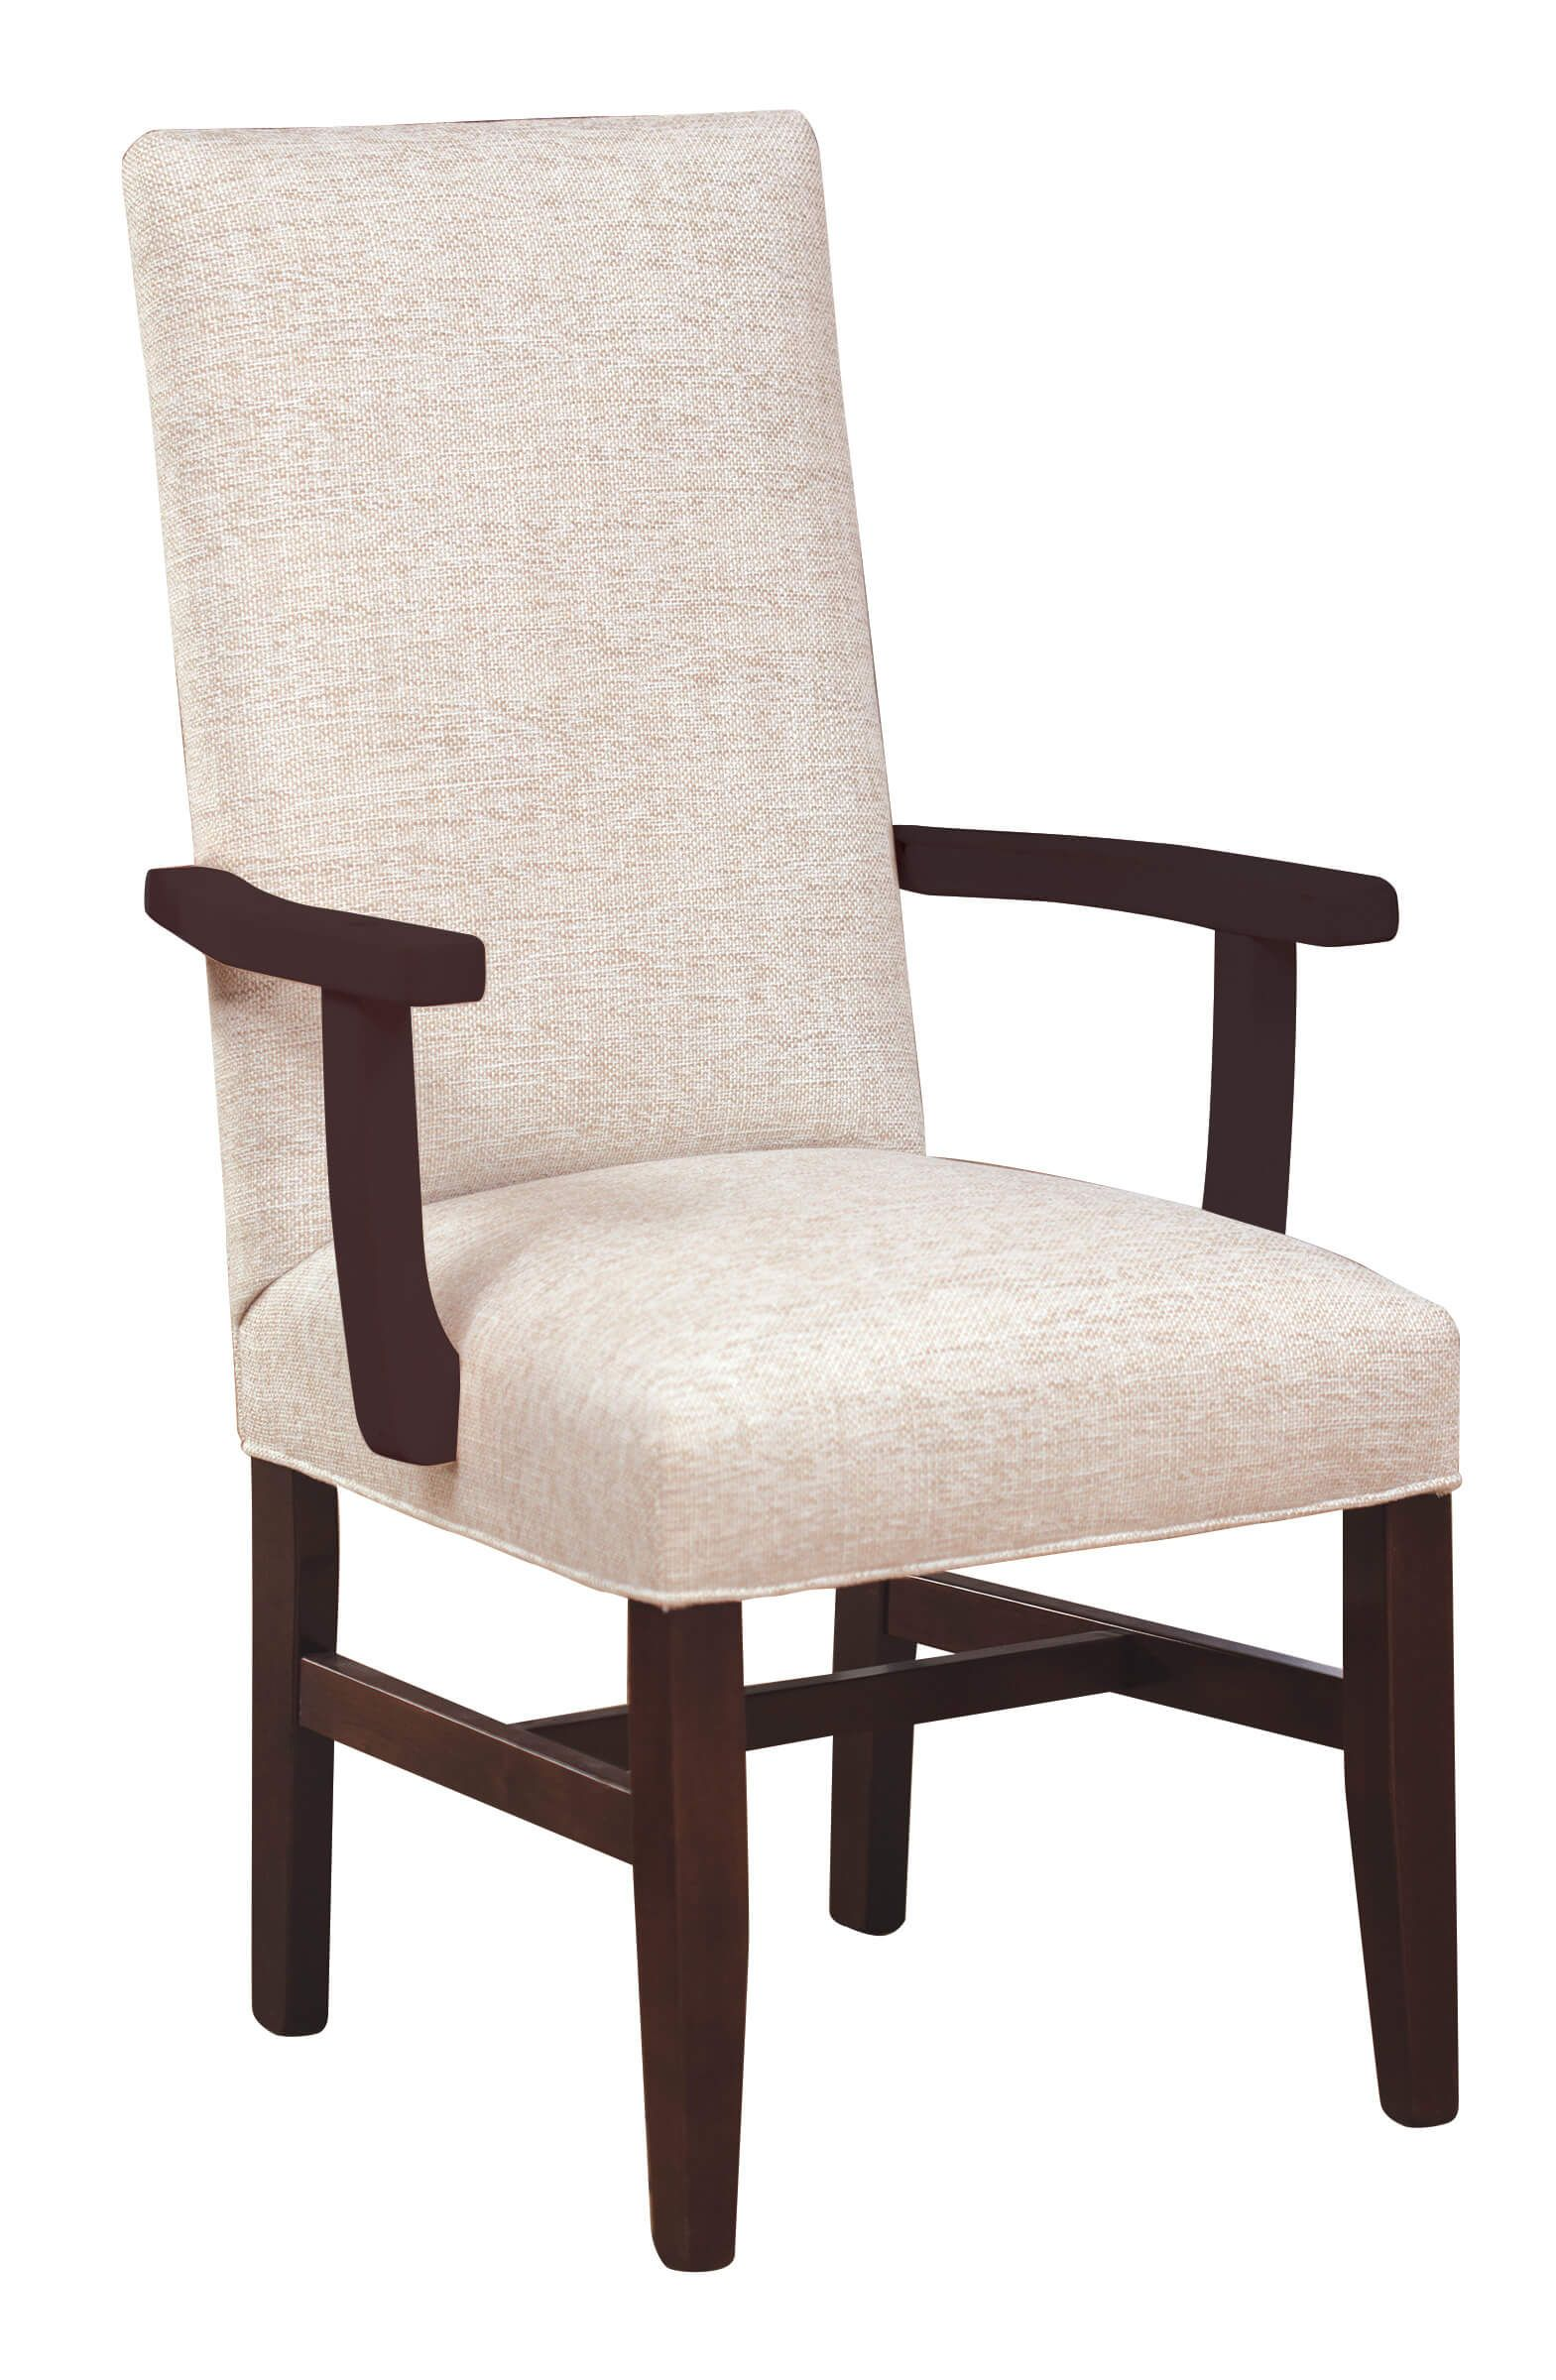 Alabaster Upholstered Arm Chair